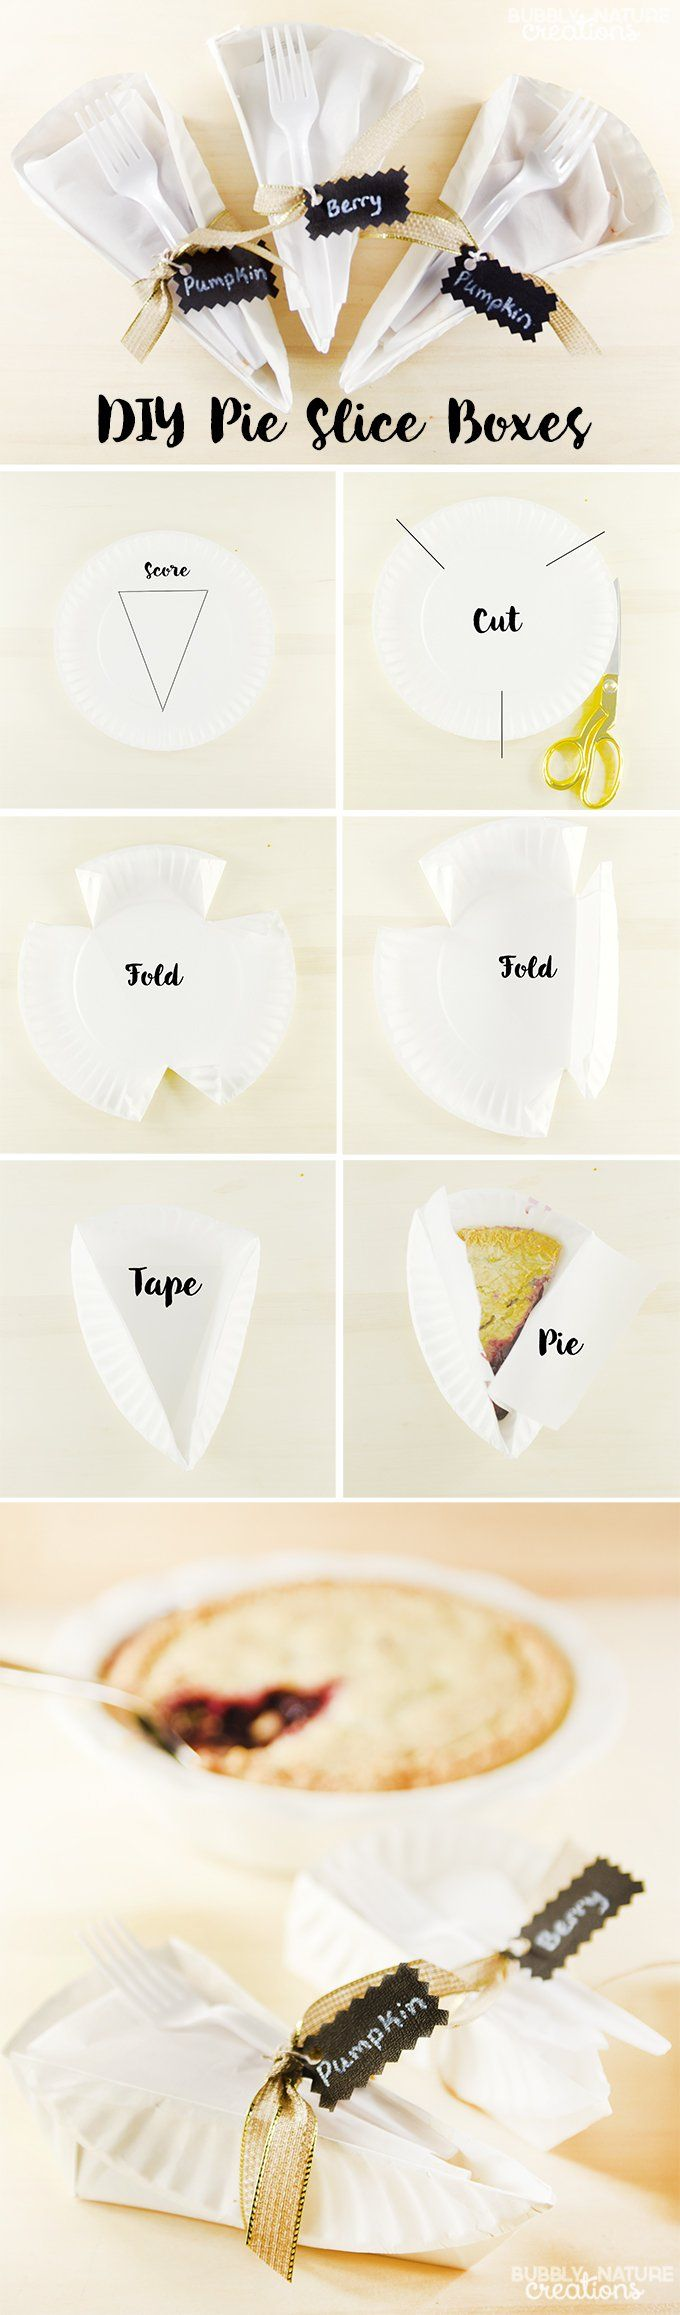 best ideas about bake packaging cupcake diy pie slice boxes from paper plates holidays adslice boxescake slice boxbake